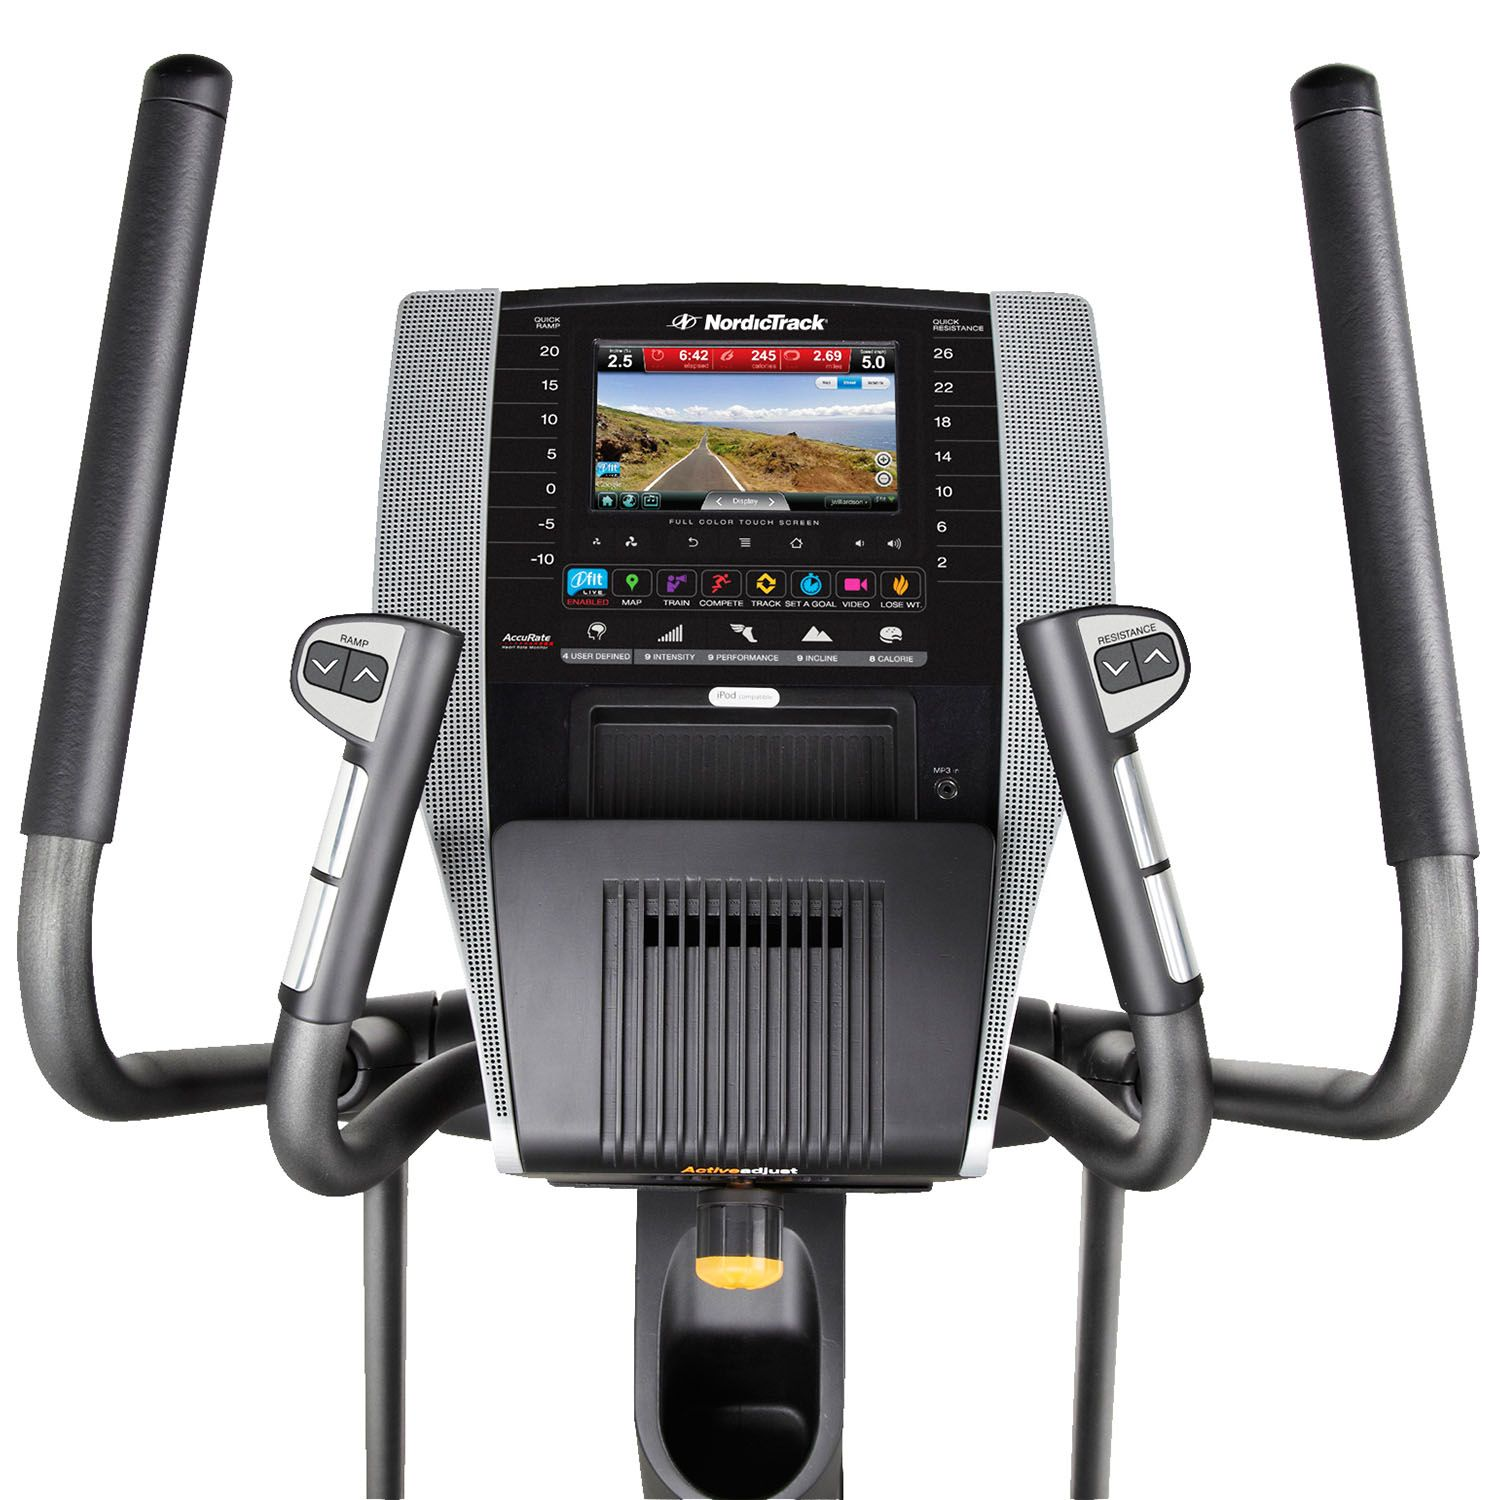 NordicTrack Ultimate Cardio Package